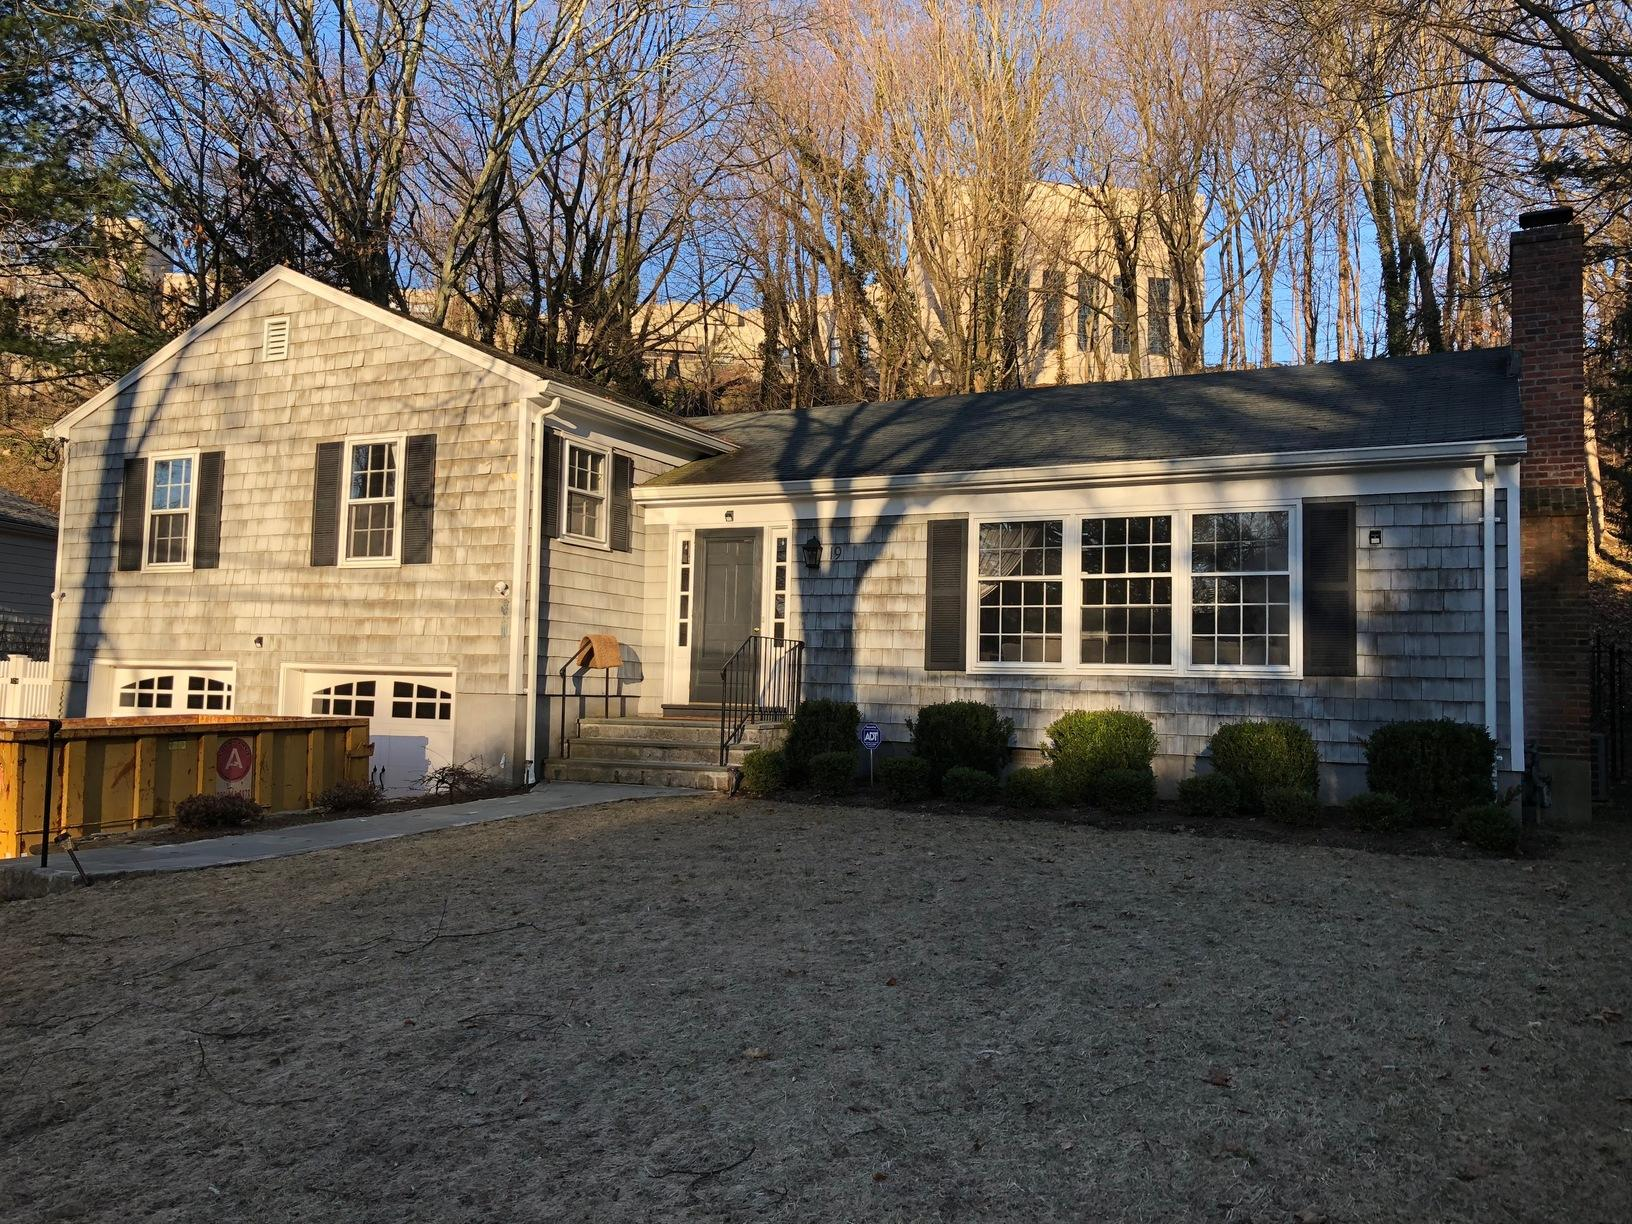 Exterior Siding, Trim, Windows and Entry Door Replacement - Greenwich, CT - Before Photo